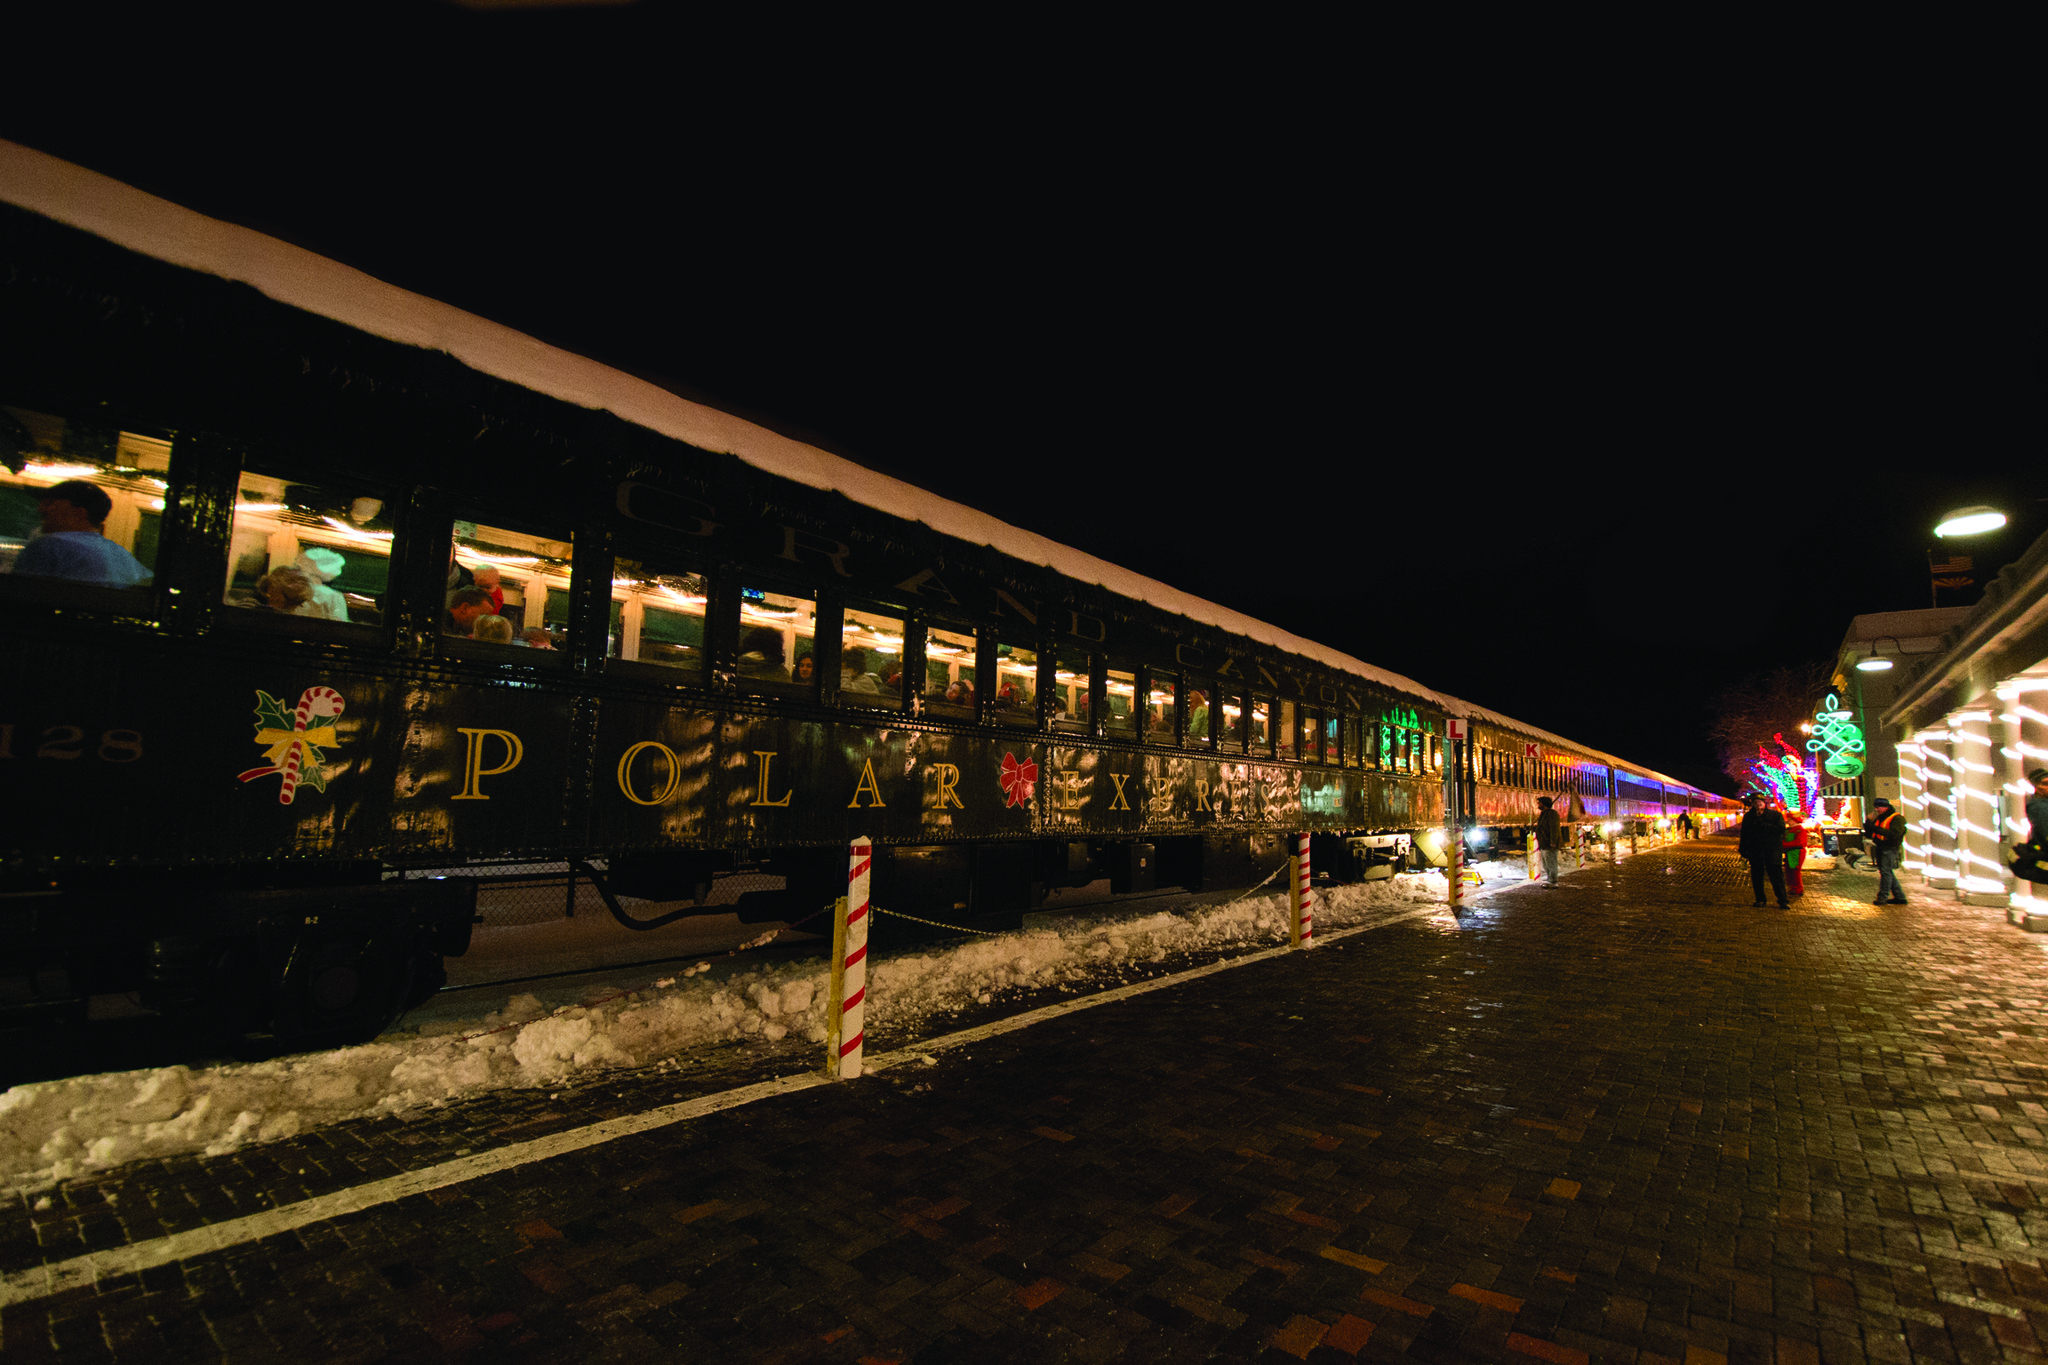 Grand canyon christmas train prepped la times for What is the best polar express train ride